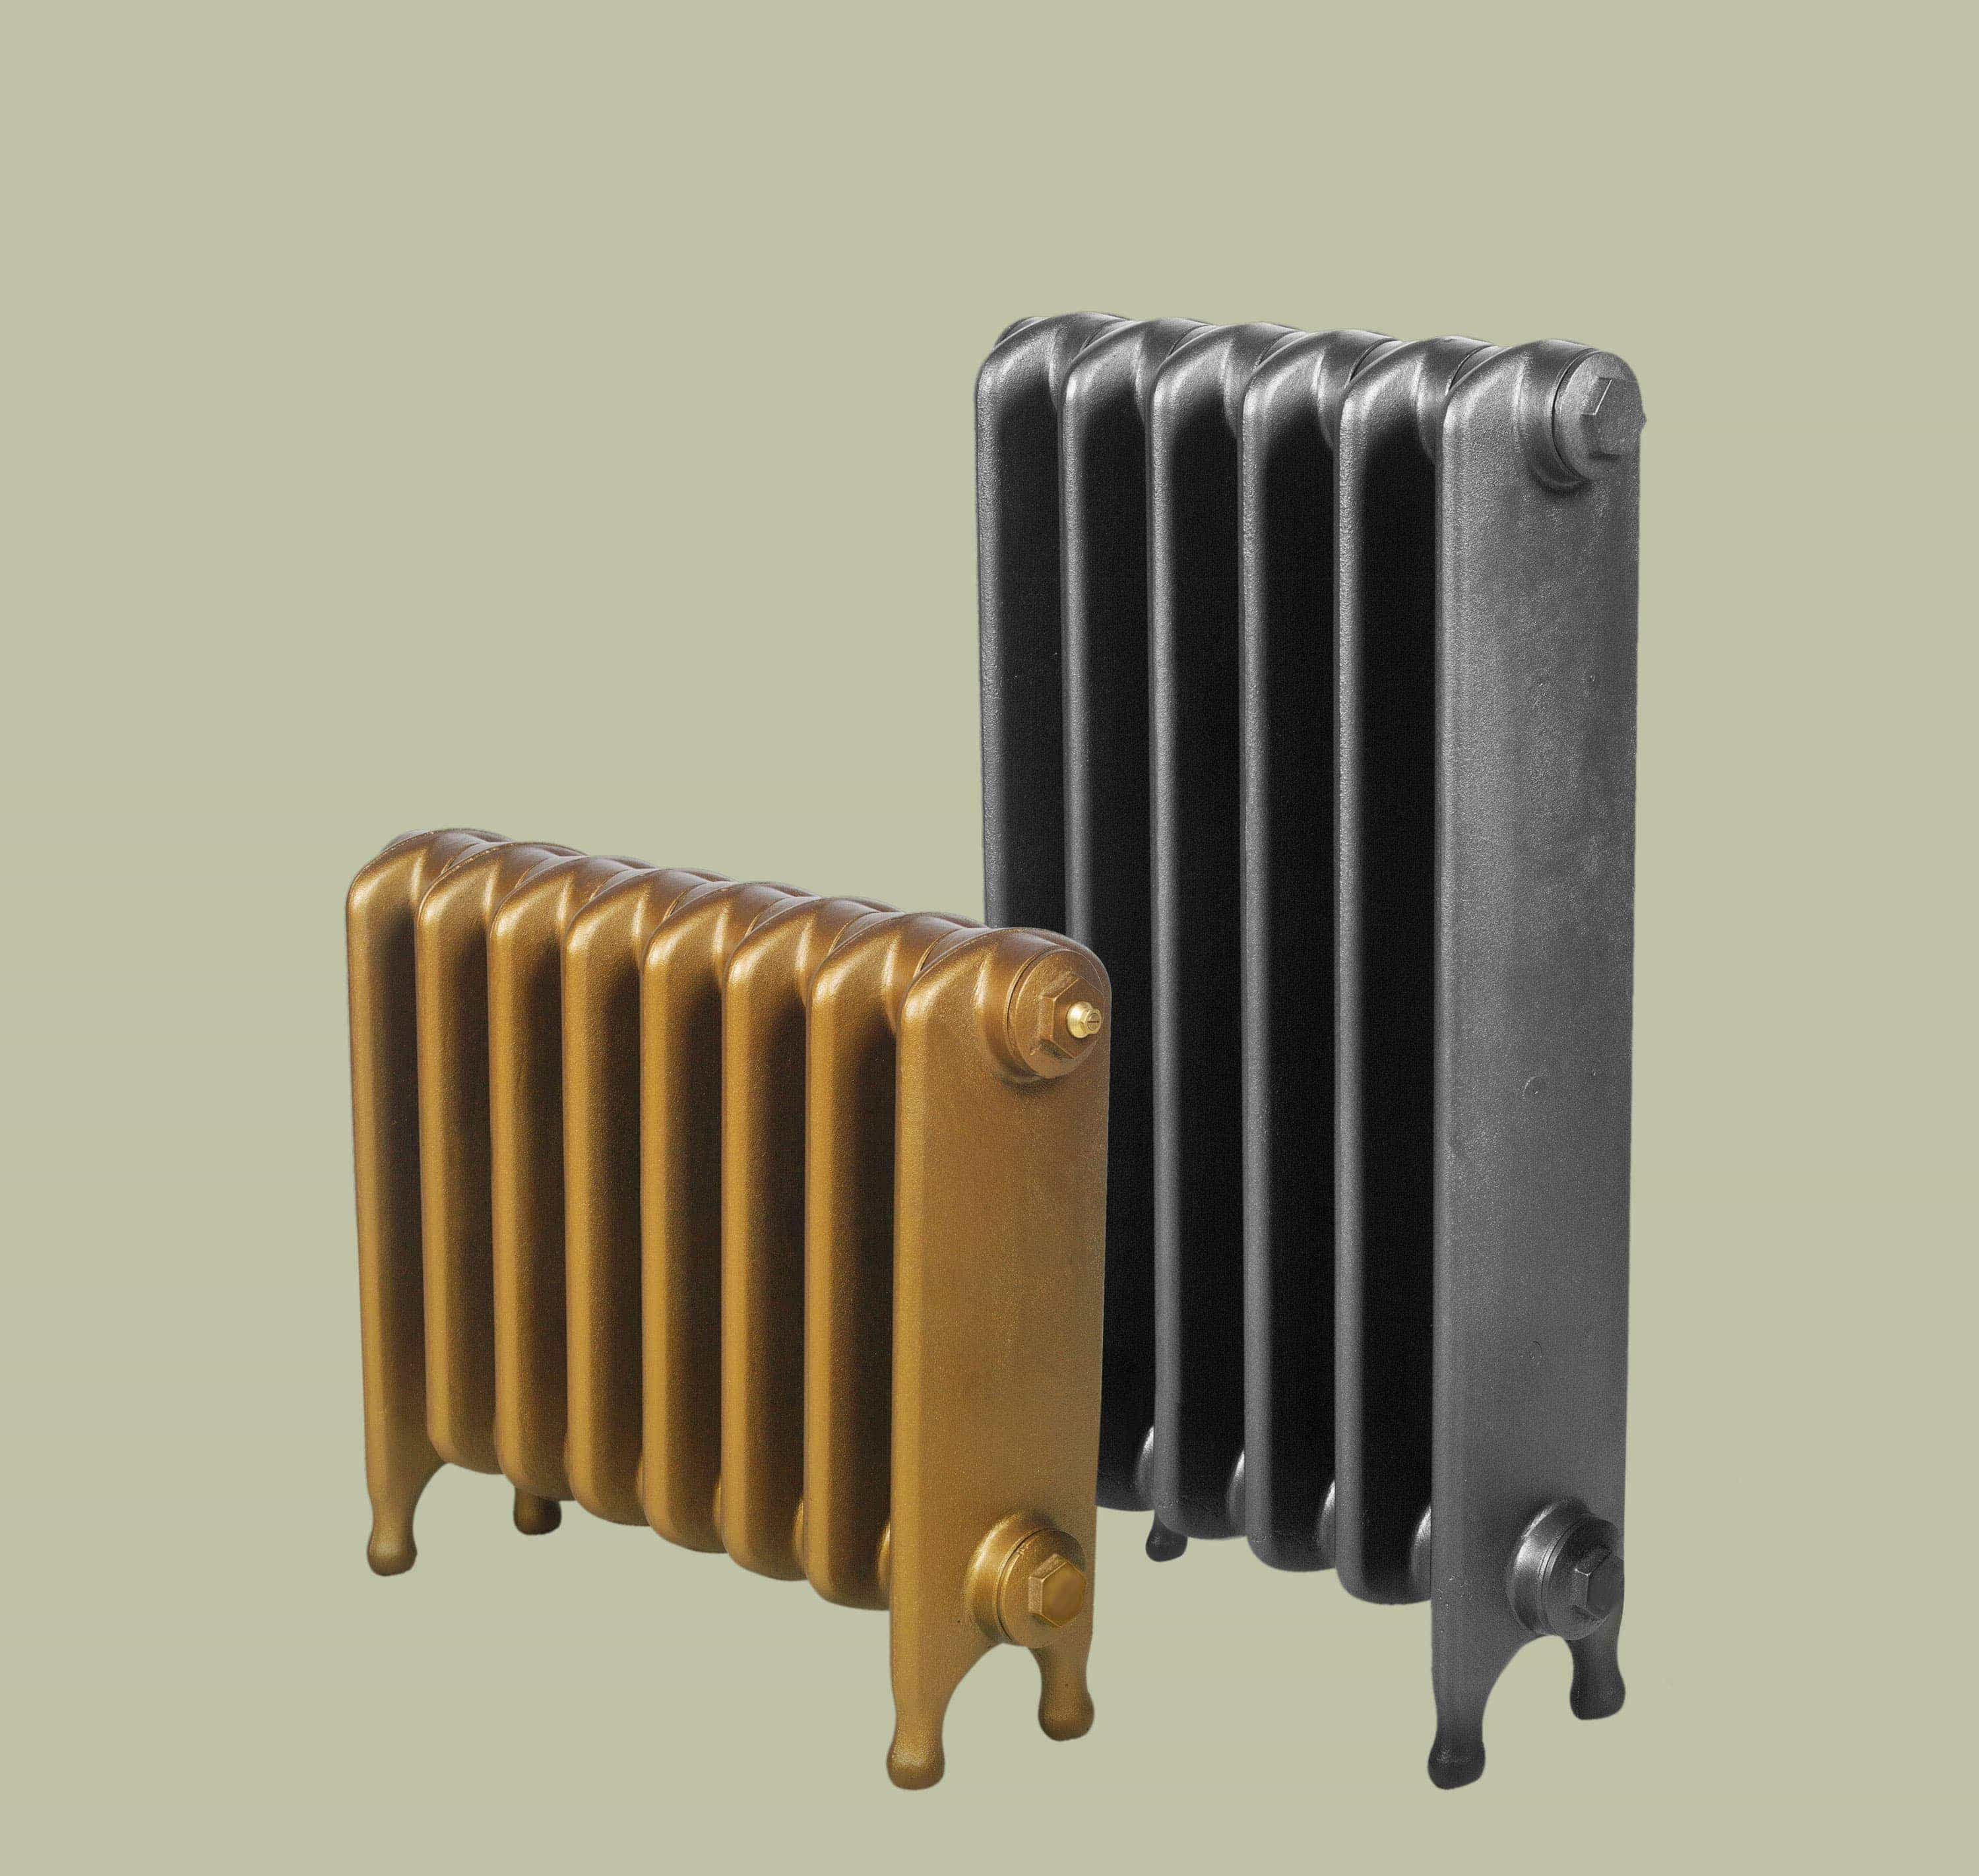 Thackray Cast Iron Radiators (440mm to 740mm high)